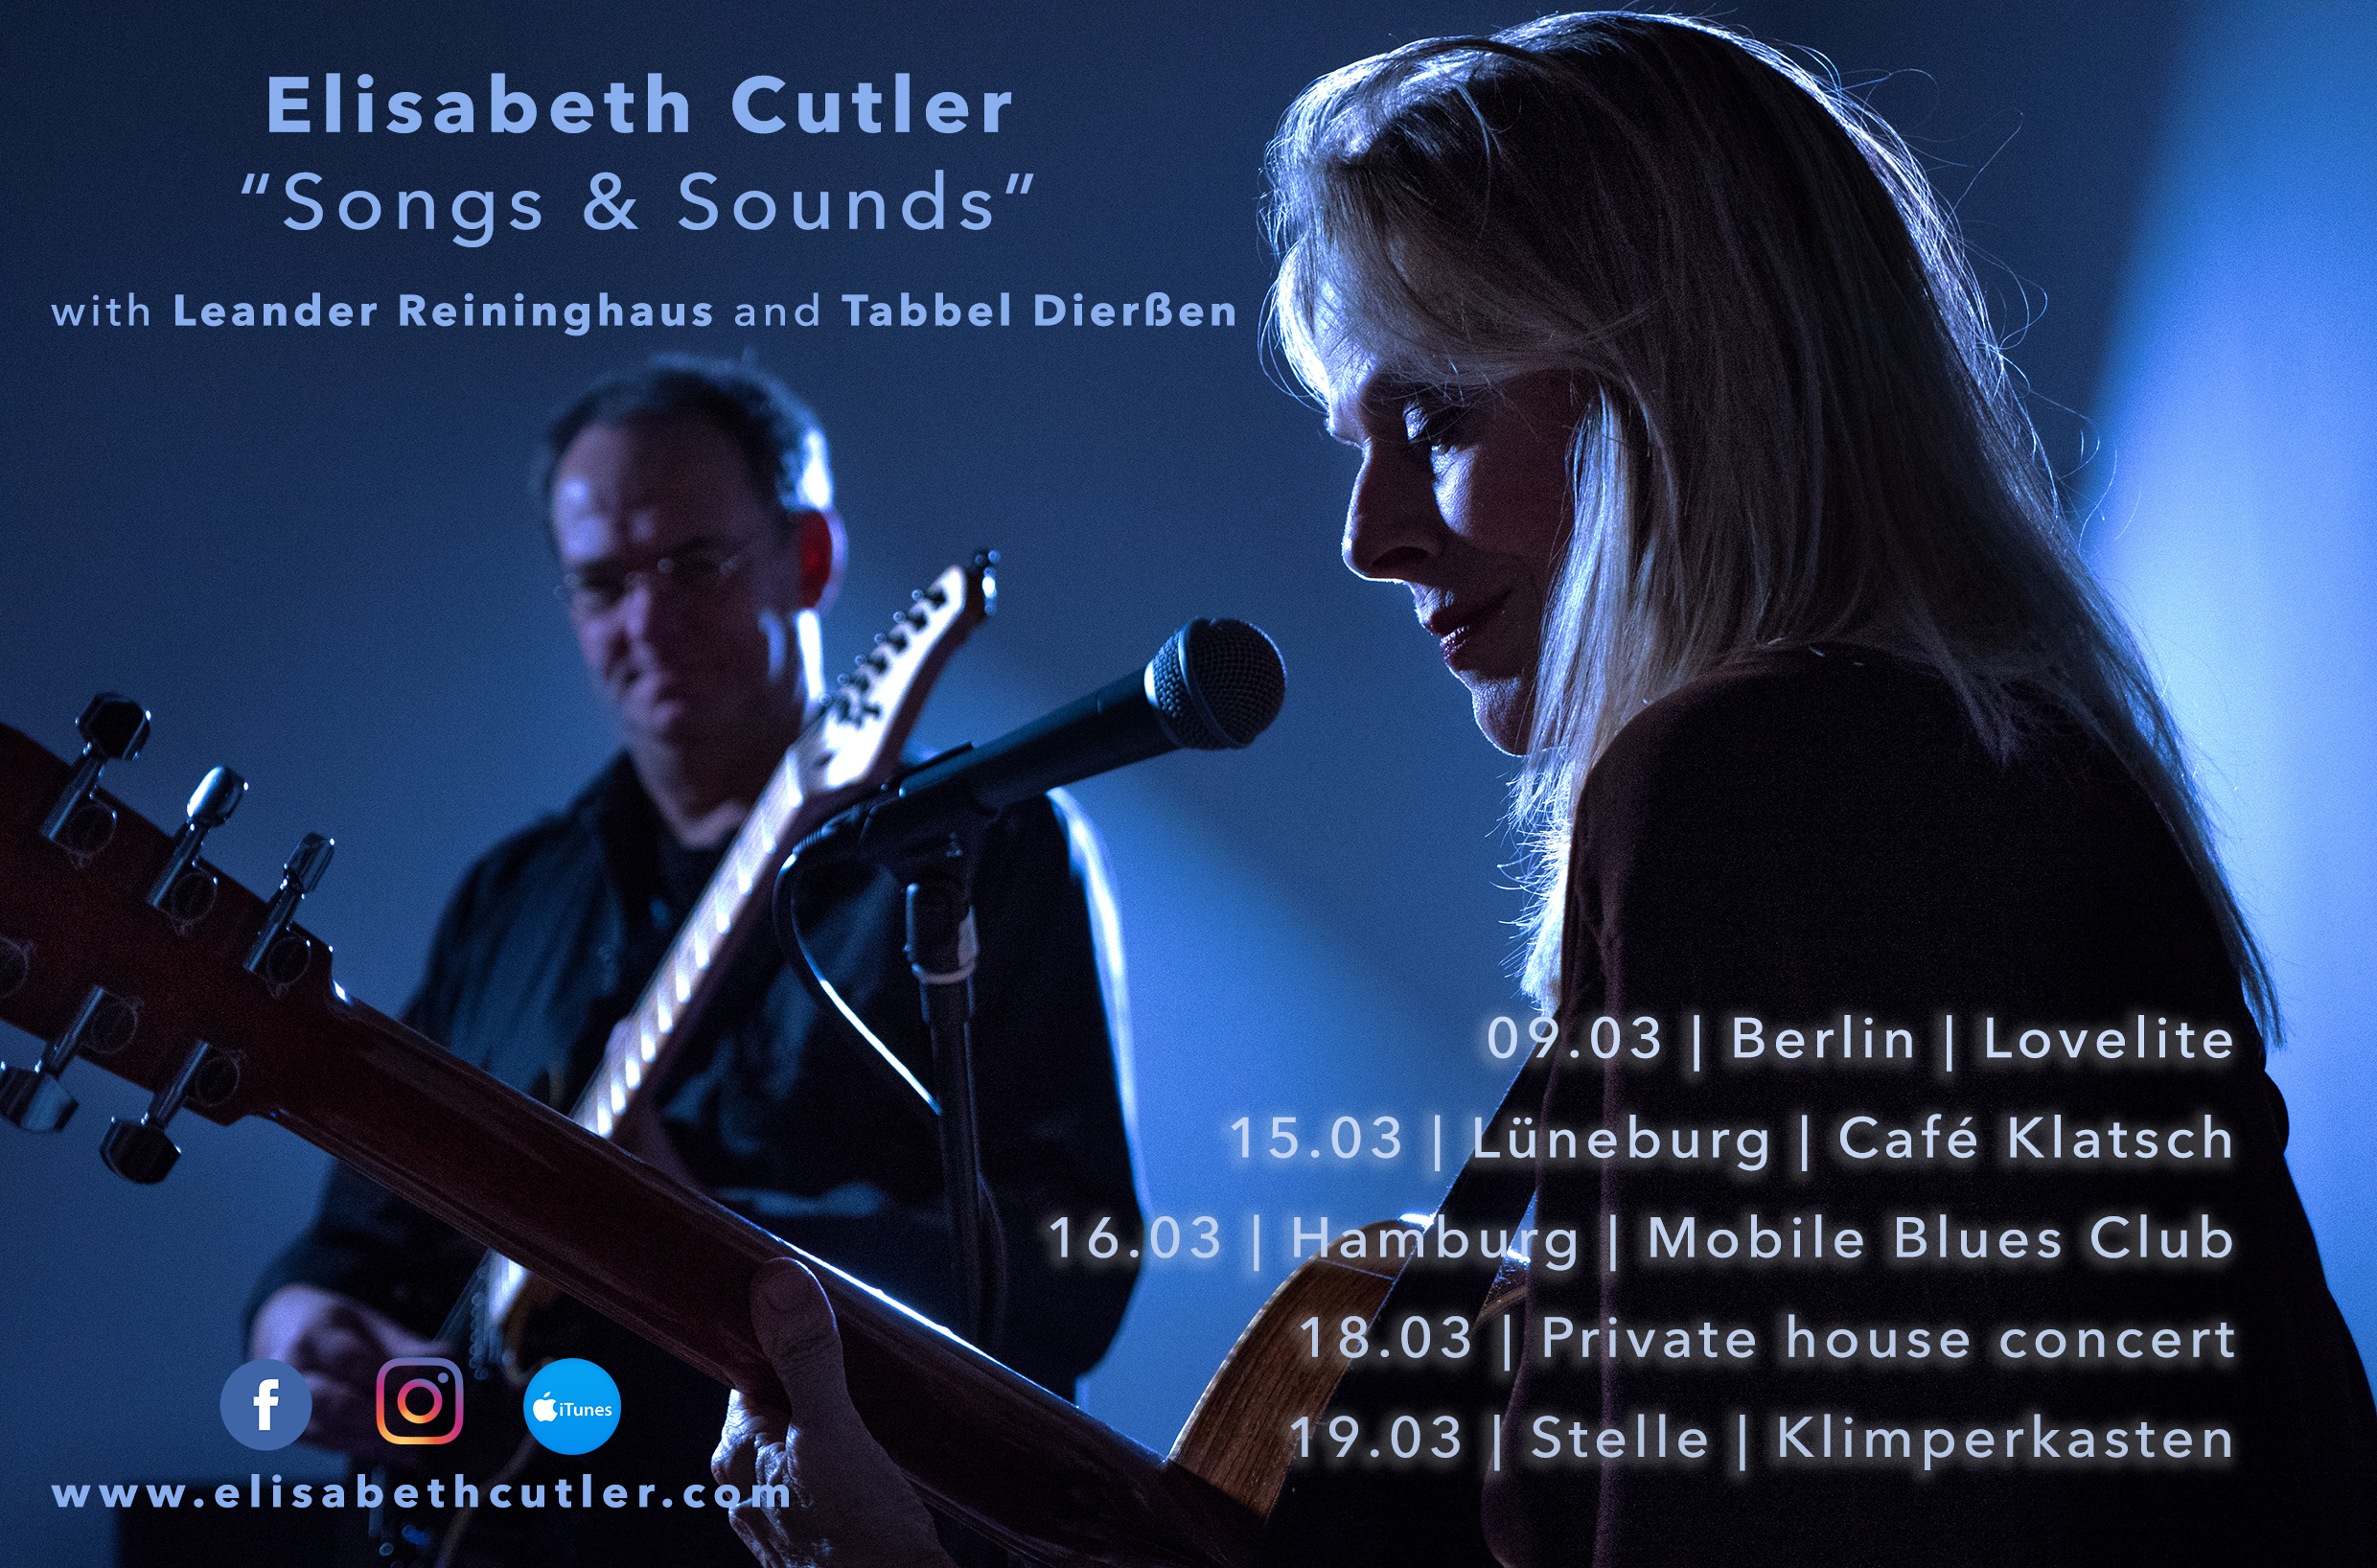 Elisabeth Cutler Songs & Sounds in Germany - Elisabeth Cutler